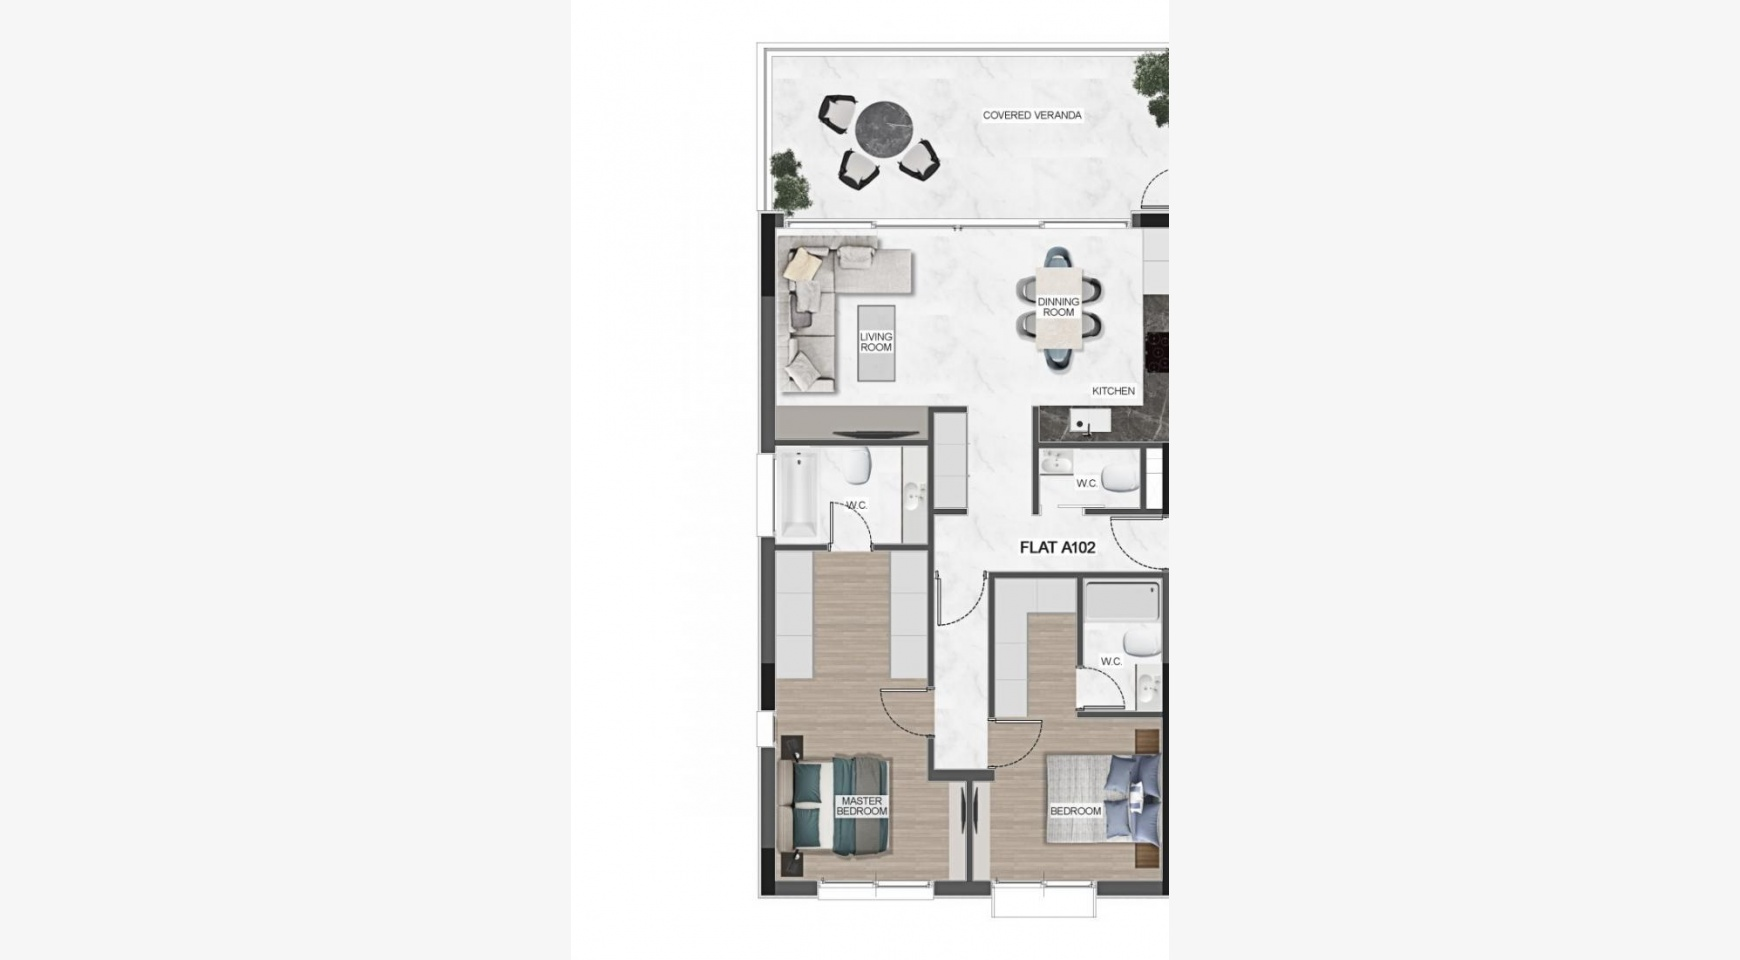 Urban City Residences, Block A. New Spacious 3 Bedroom Apartment 201 in the City Centre - 43